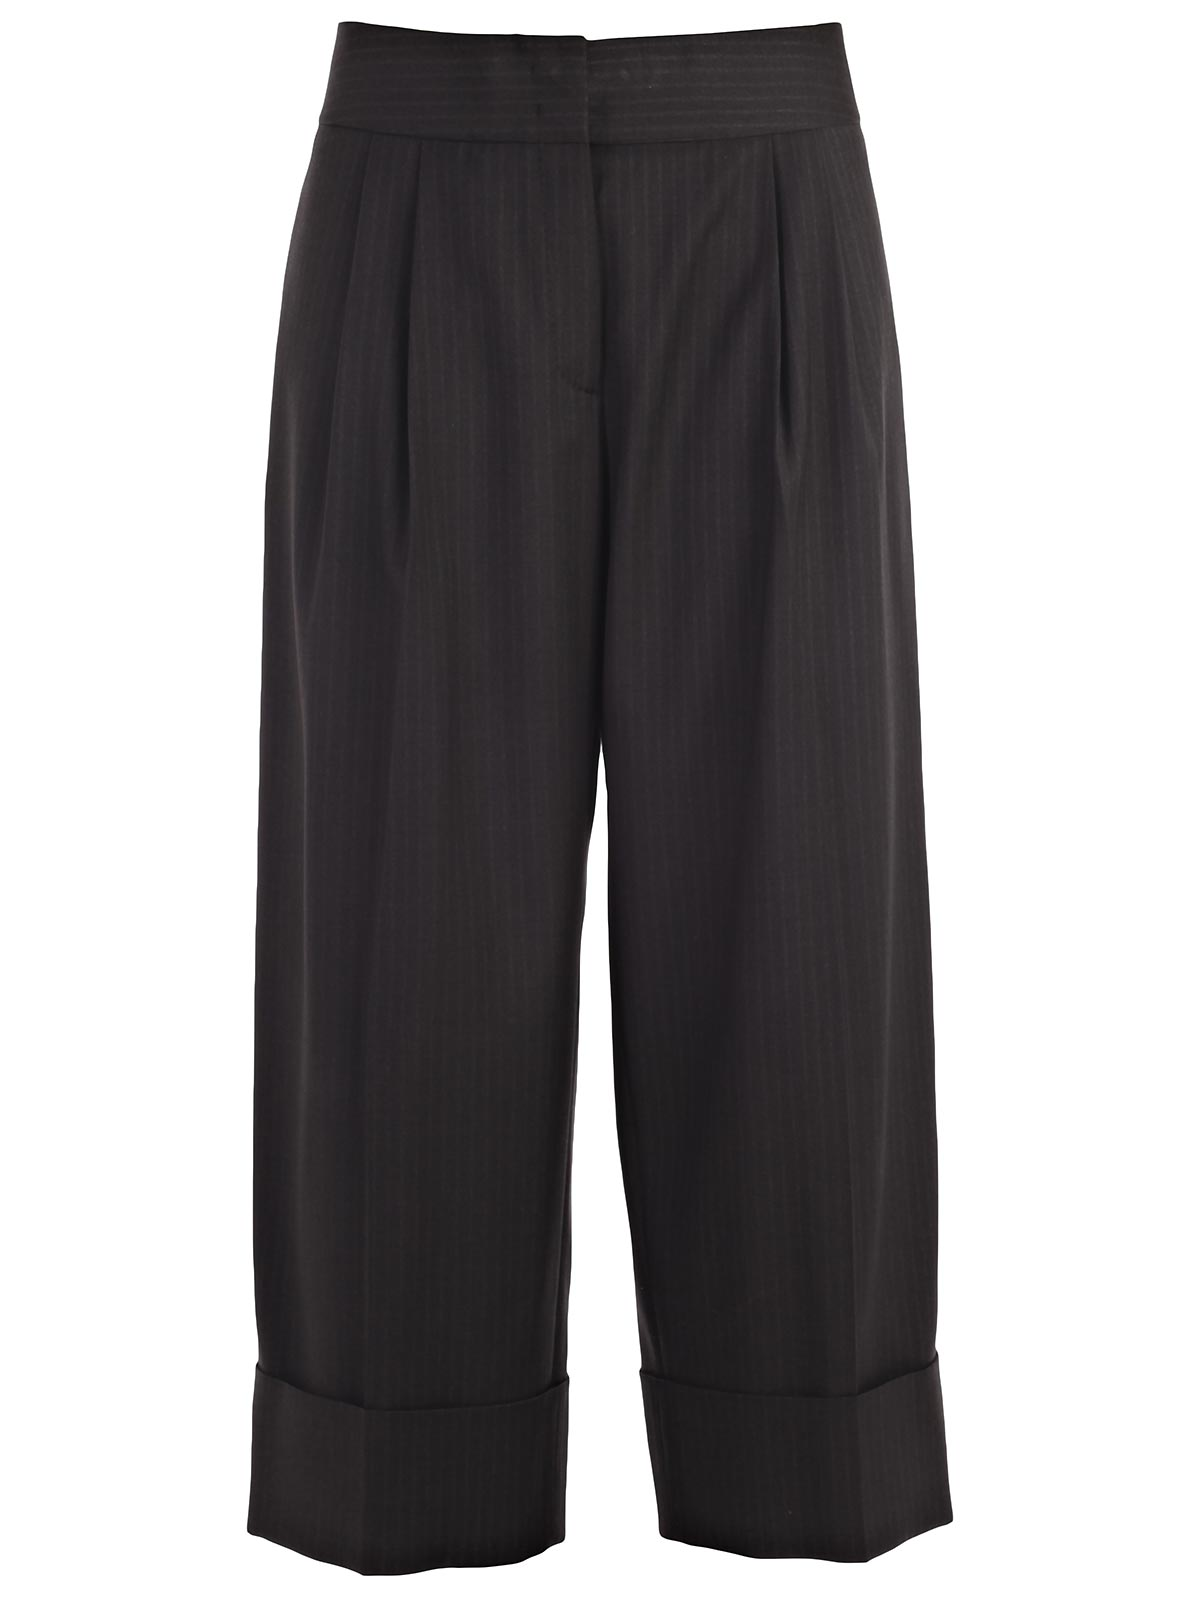 Picture of ANTONIO MARRAS TROUSERS PANTALONE AMPIO RISVOLTO GESSATO